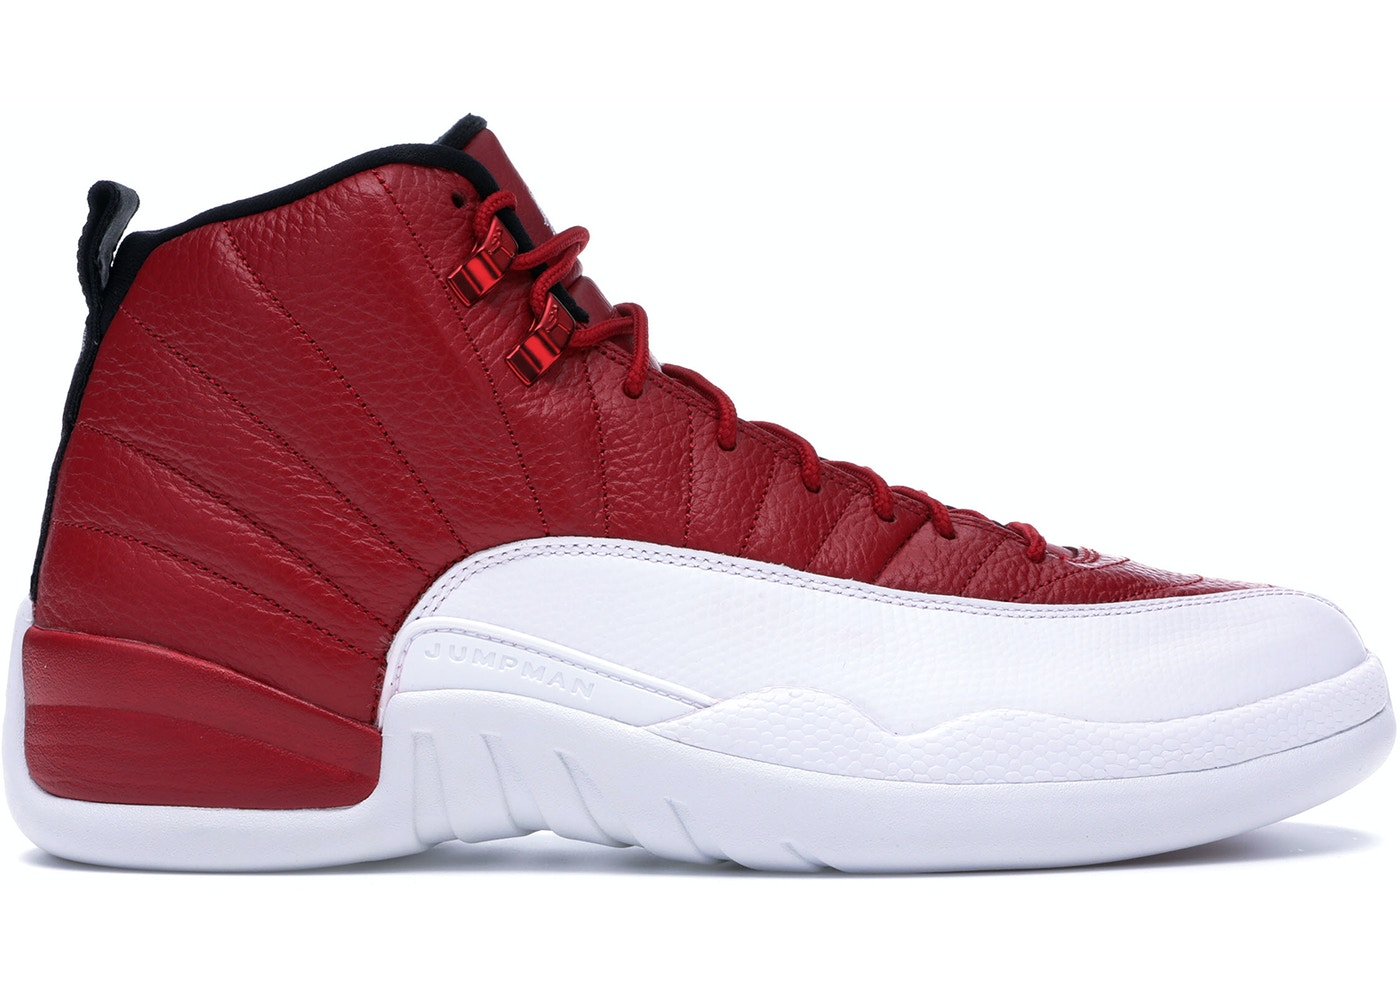 f047167db Buy Air Jordan 12 Shoes   Deadstock Sneakers